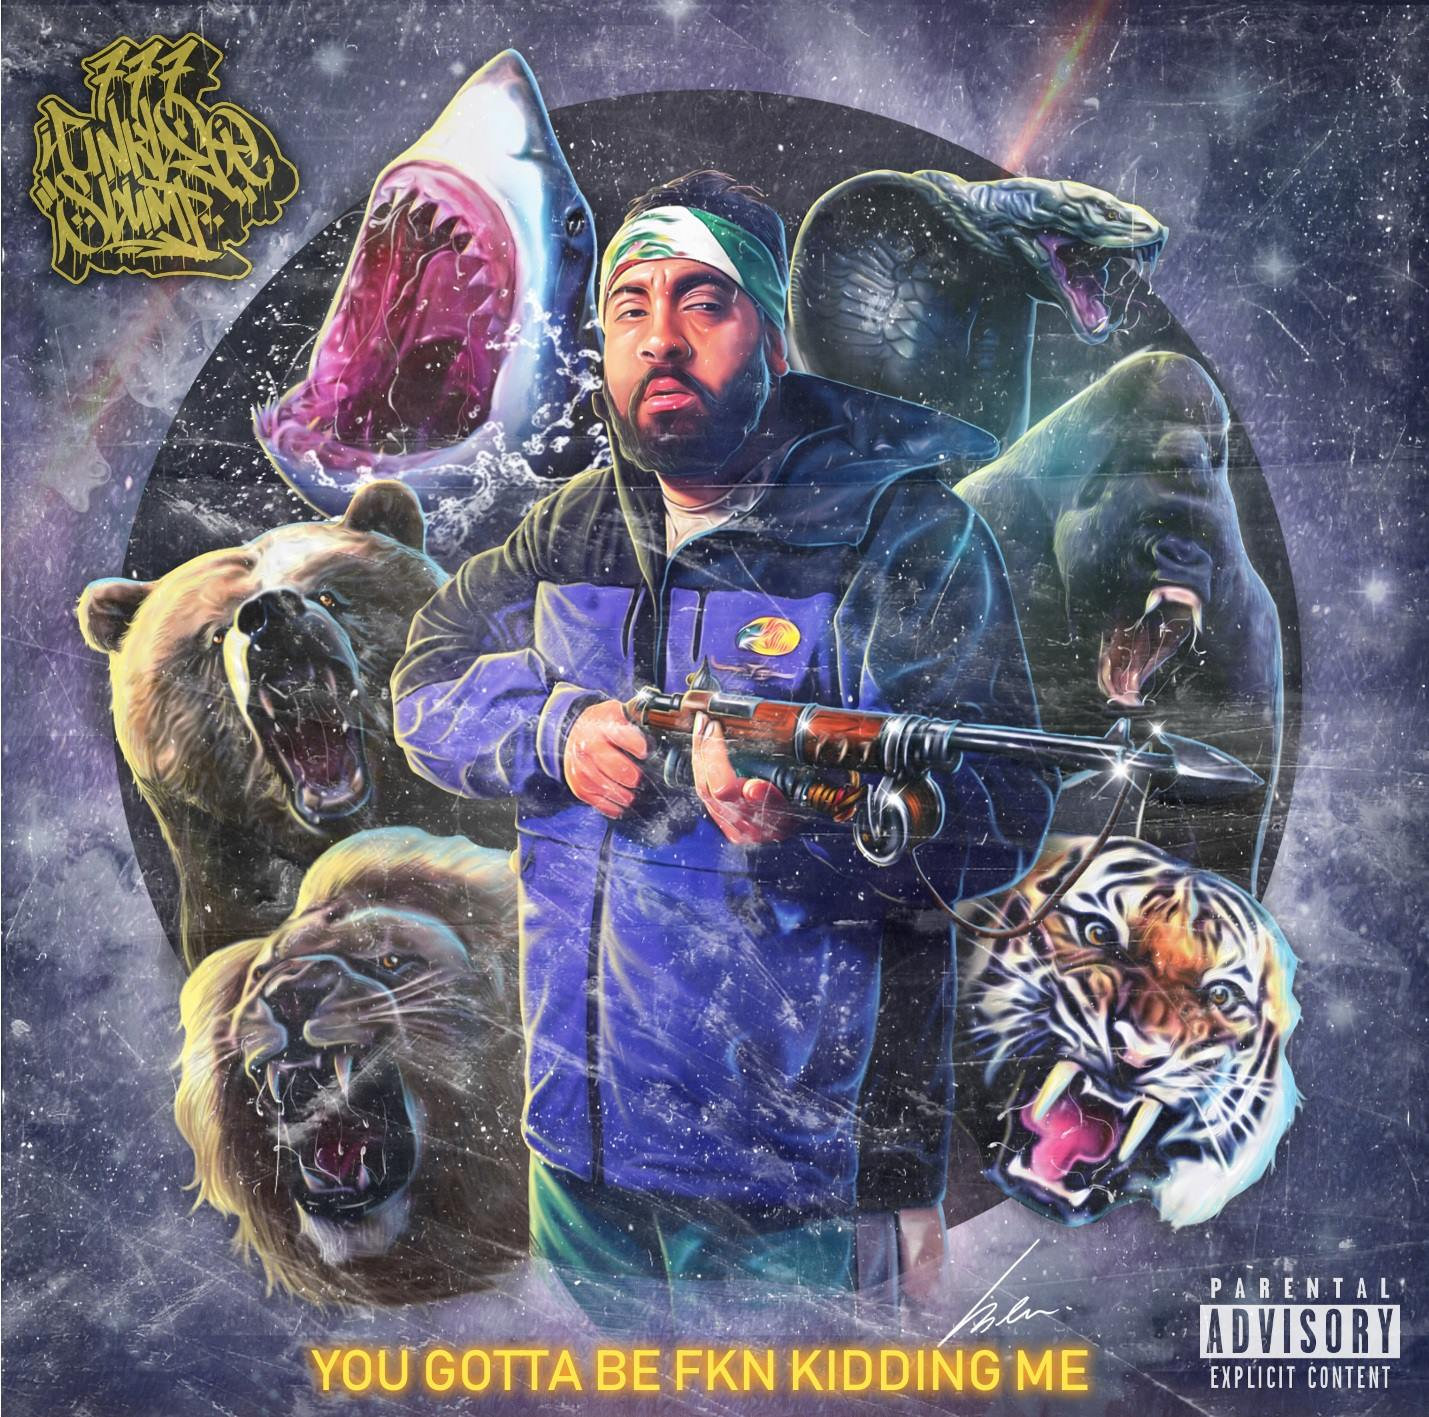 YOU GOTTA BE FKN KIDDING ME - AVAILABLE NOW ON ALL STREAMING PLATFORMSBROUGHT TO YOU BY SLUMPGANG777